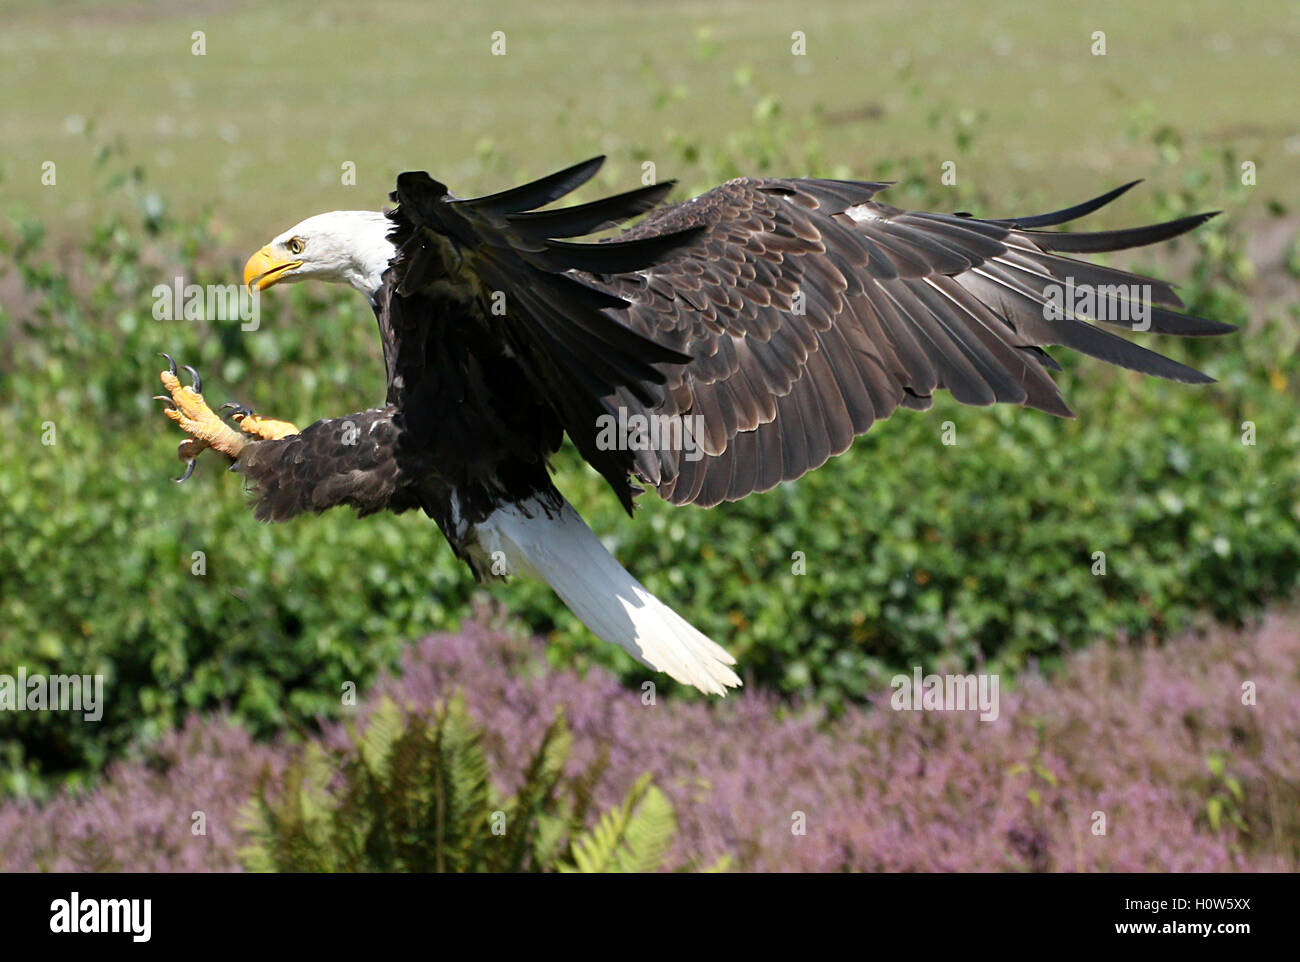 American Bald eagle (Haliaeetus leucocephalus) in flight, incoming for landing, talons outstretched Stock Photo